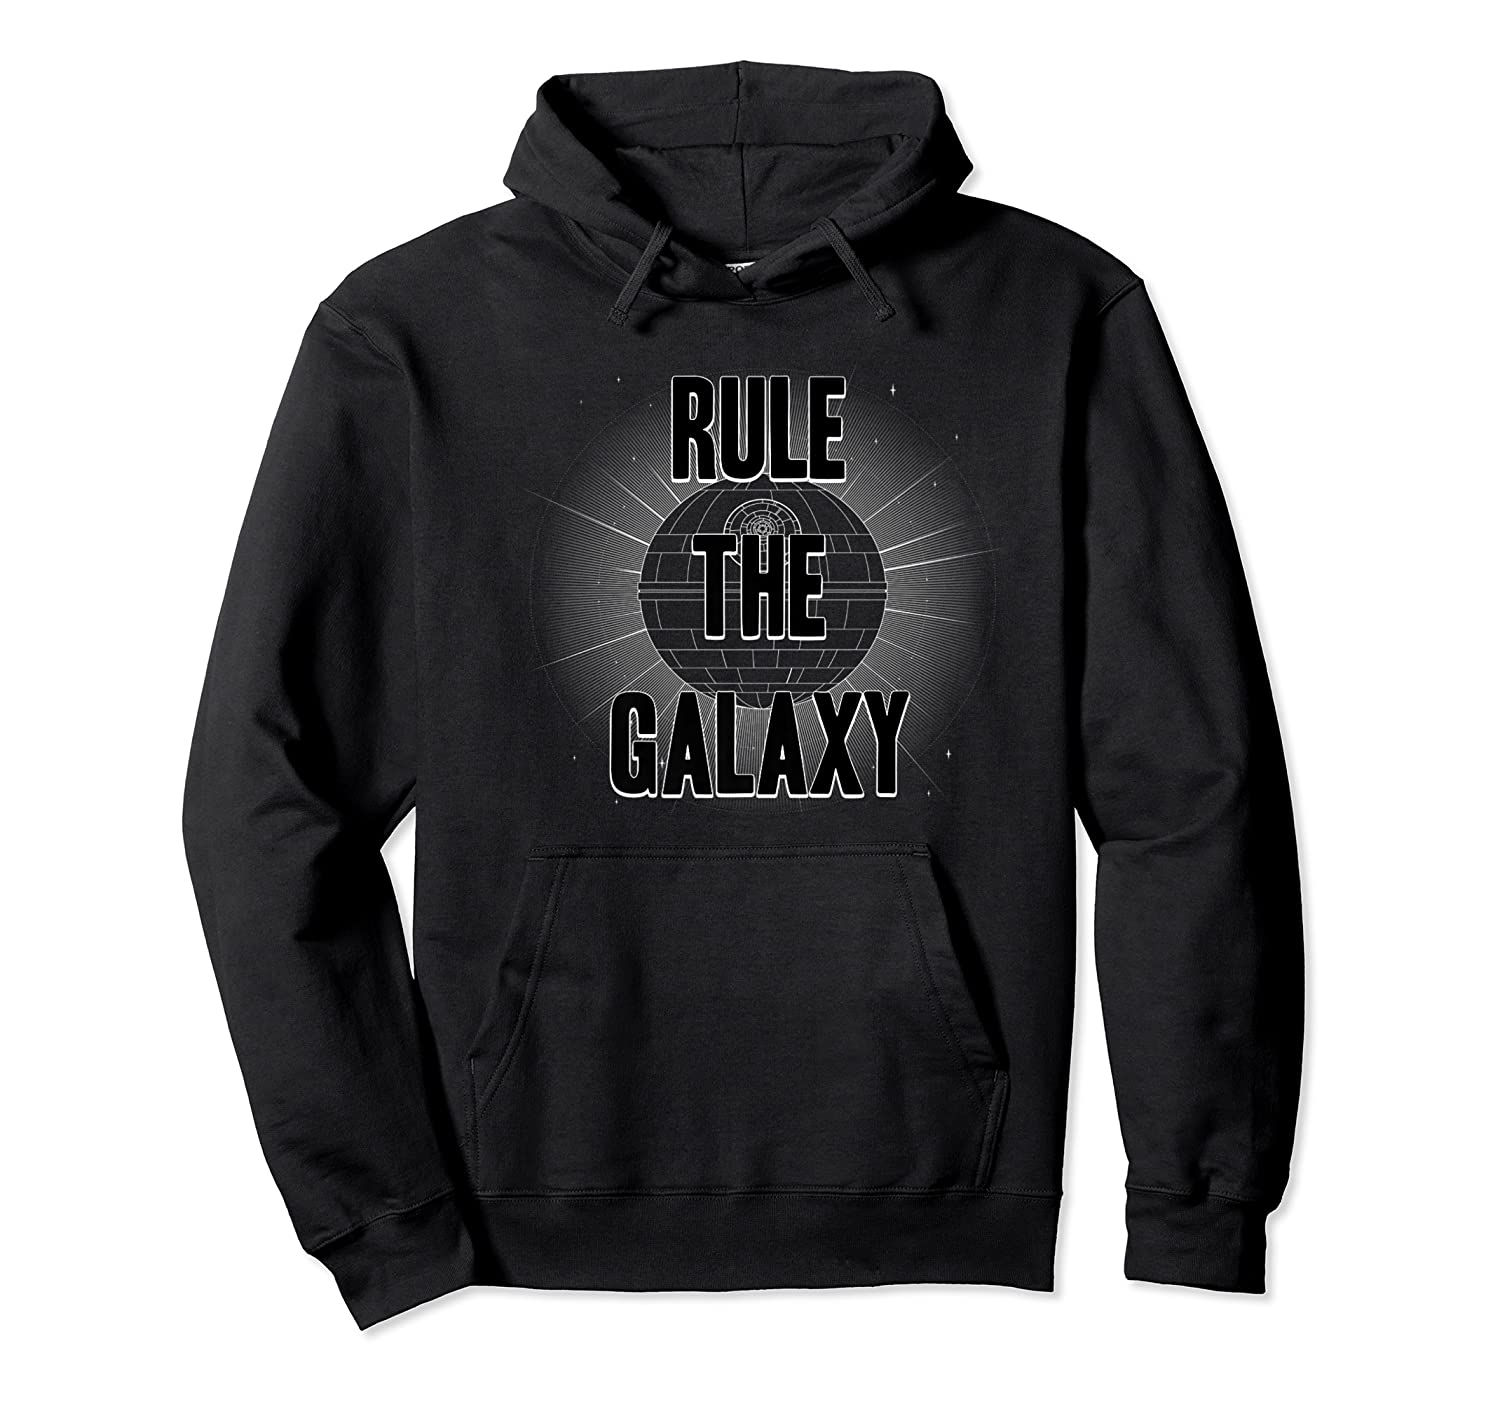 S Valentine Rule The Galaxy Shirts Unisex Pullover Hoodie